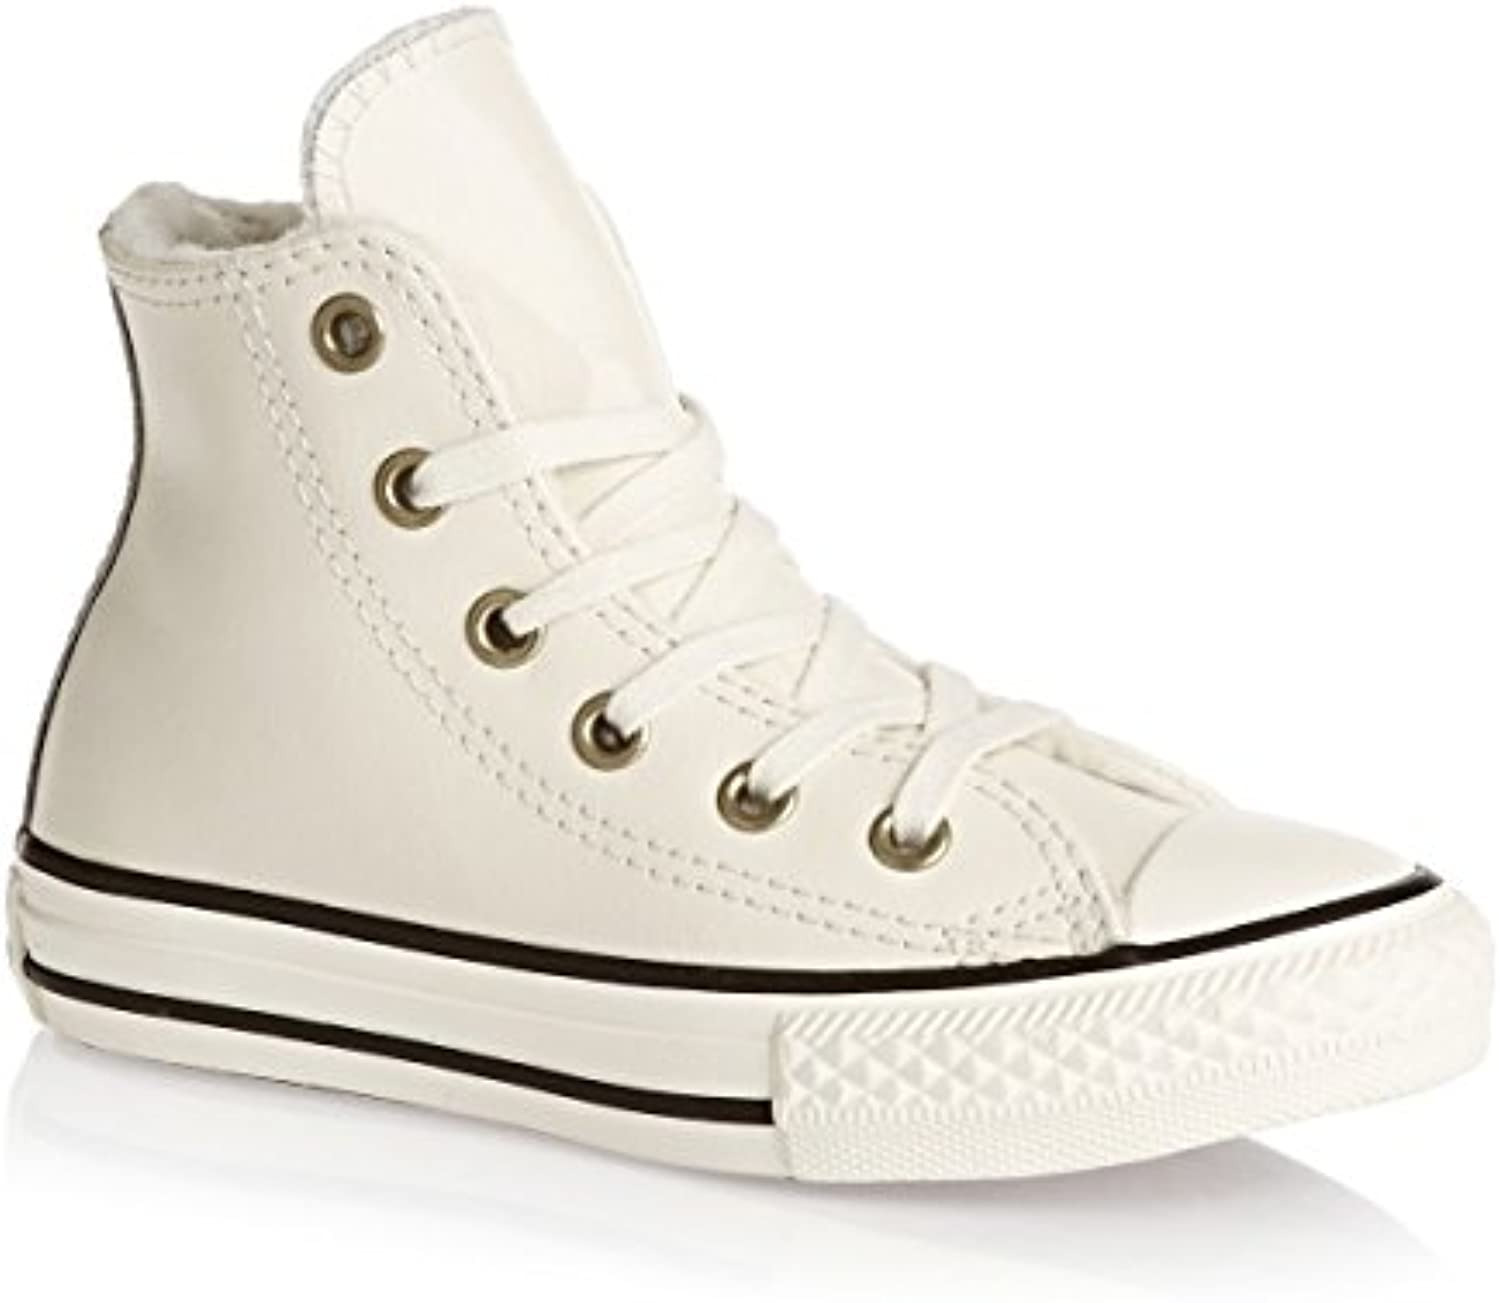 Converse Trainers   Converse Chuck Taylor Youth Leather All Star Shoes   Parchment/Black